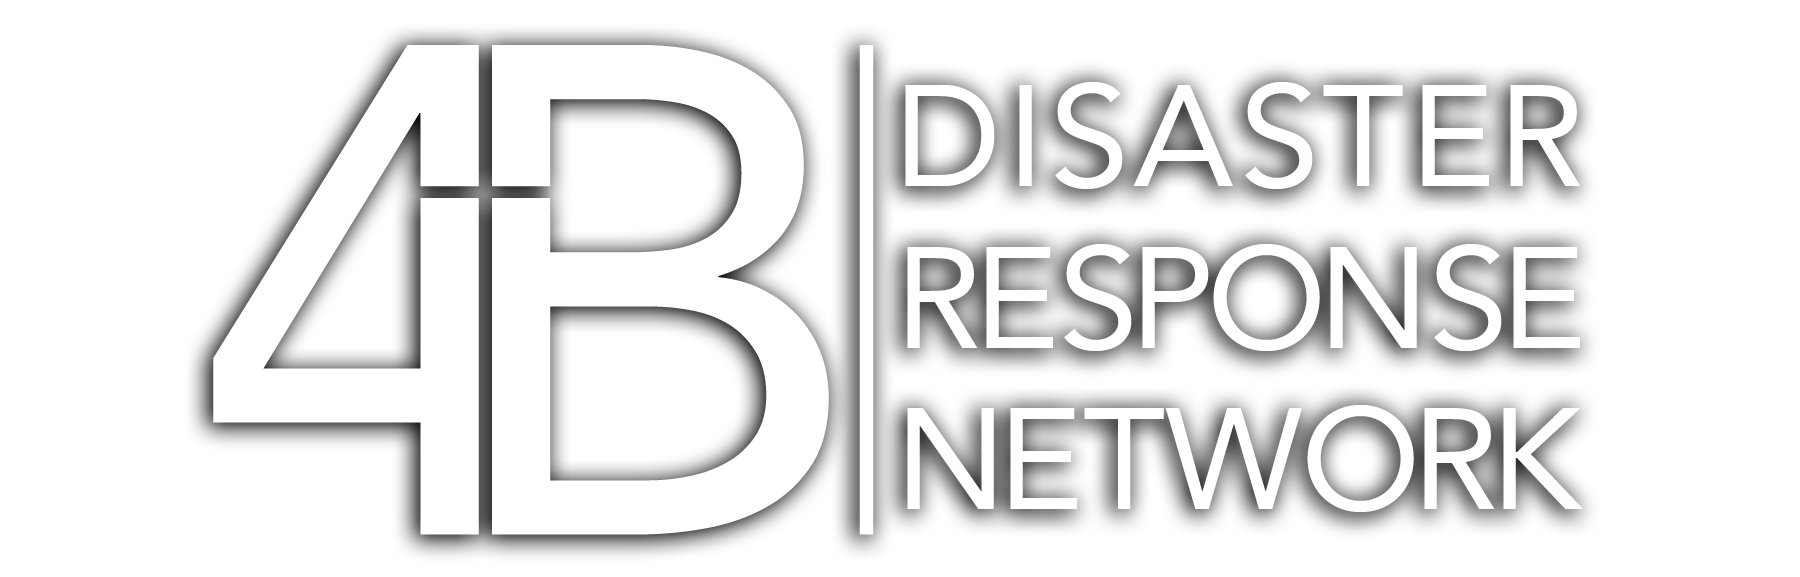 4B Disaster Response Network